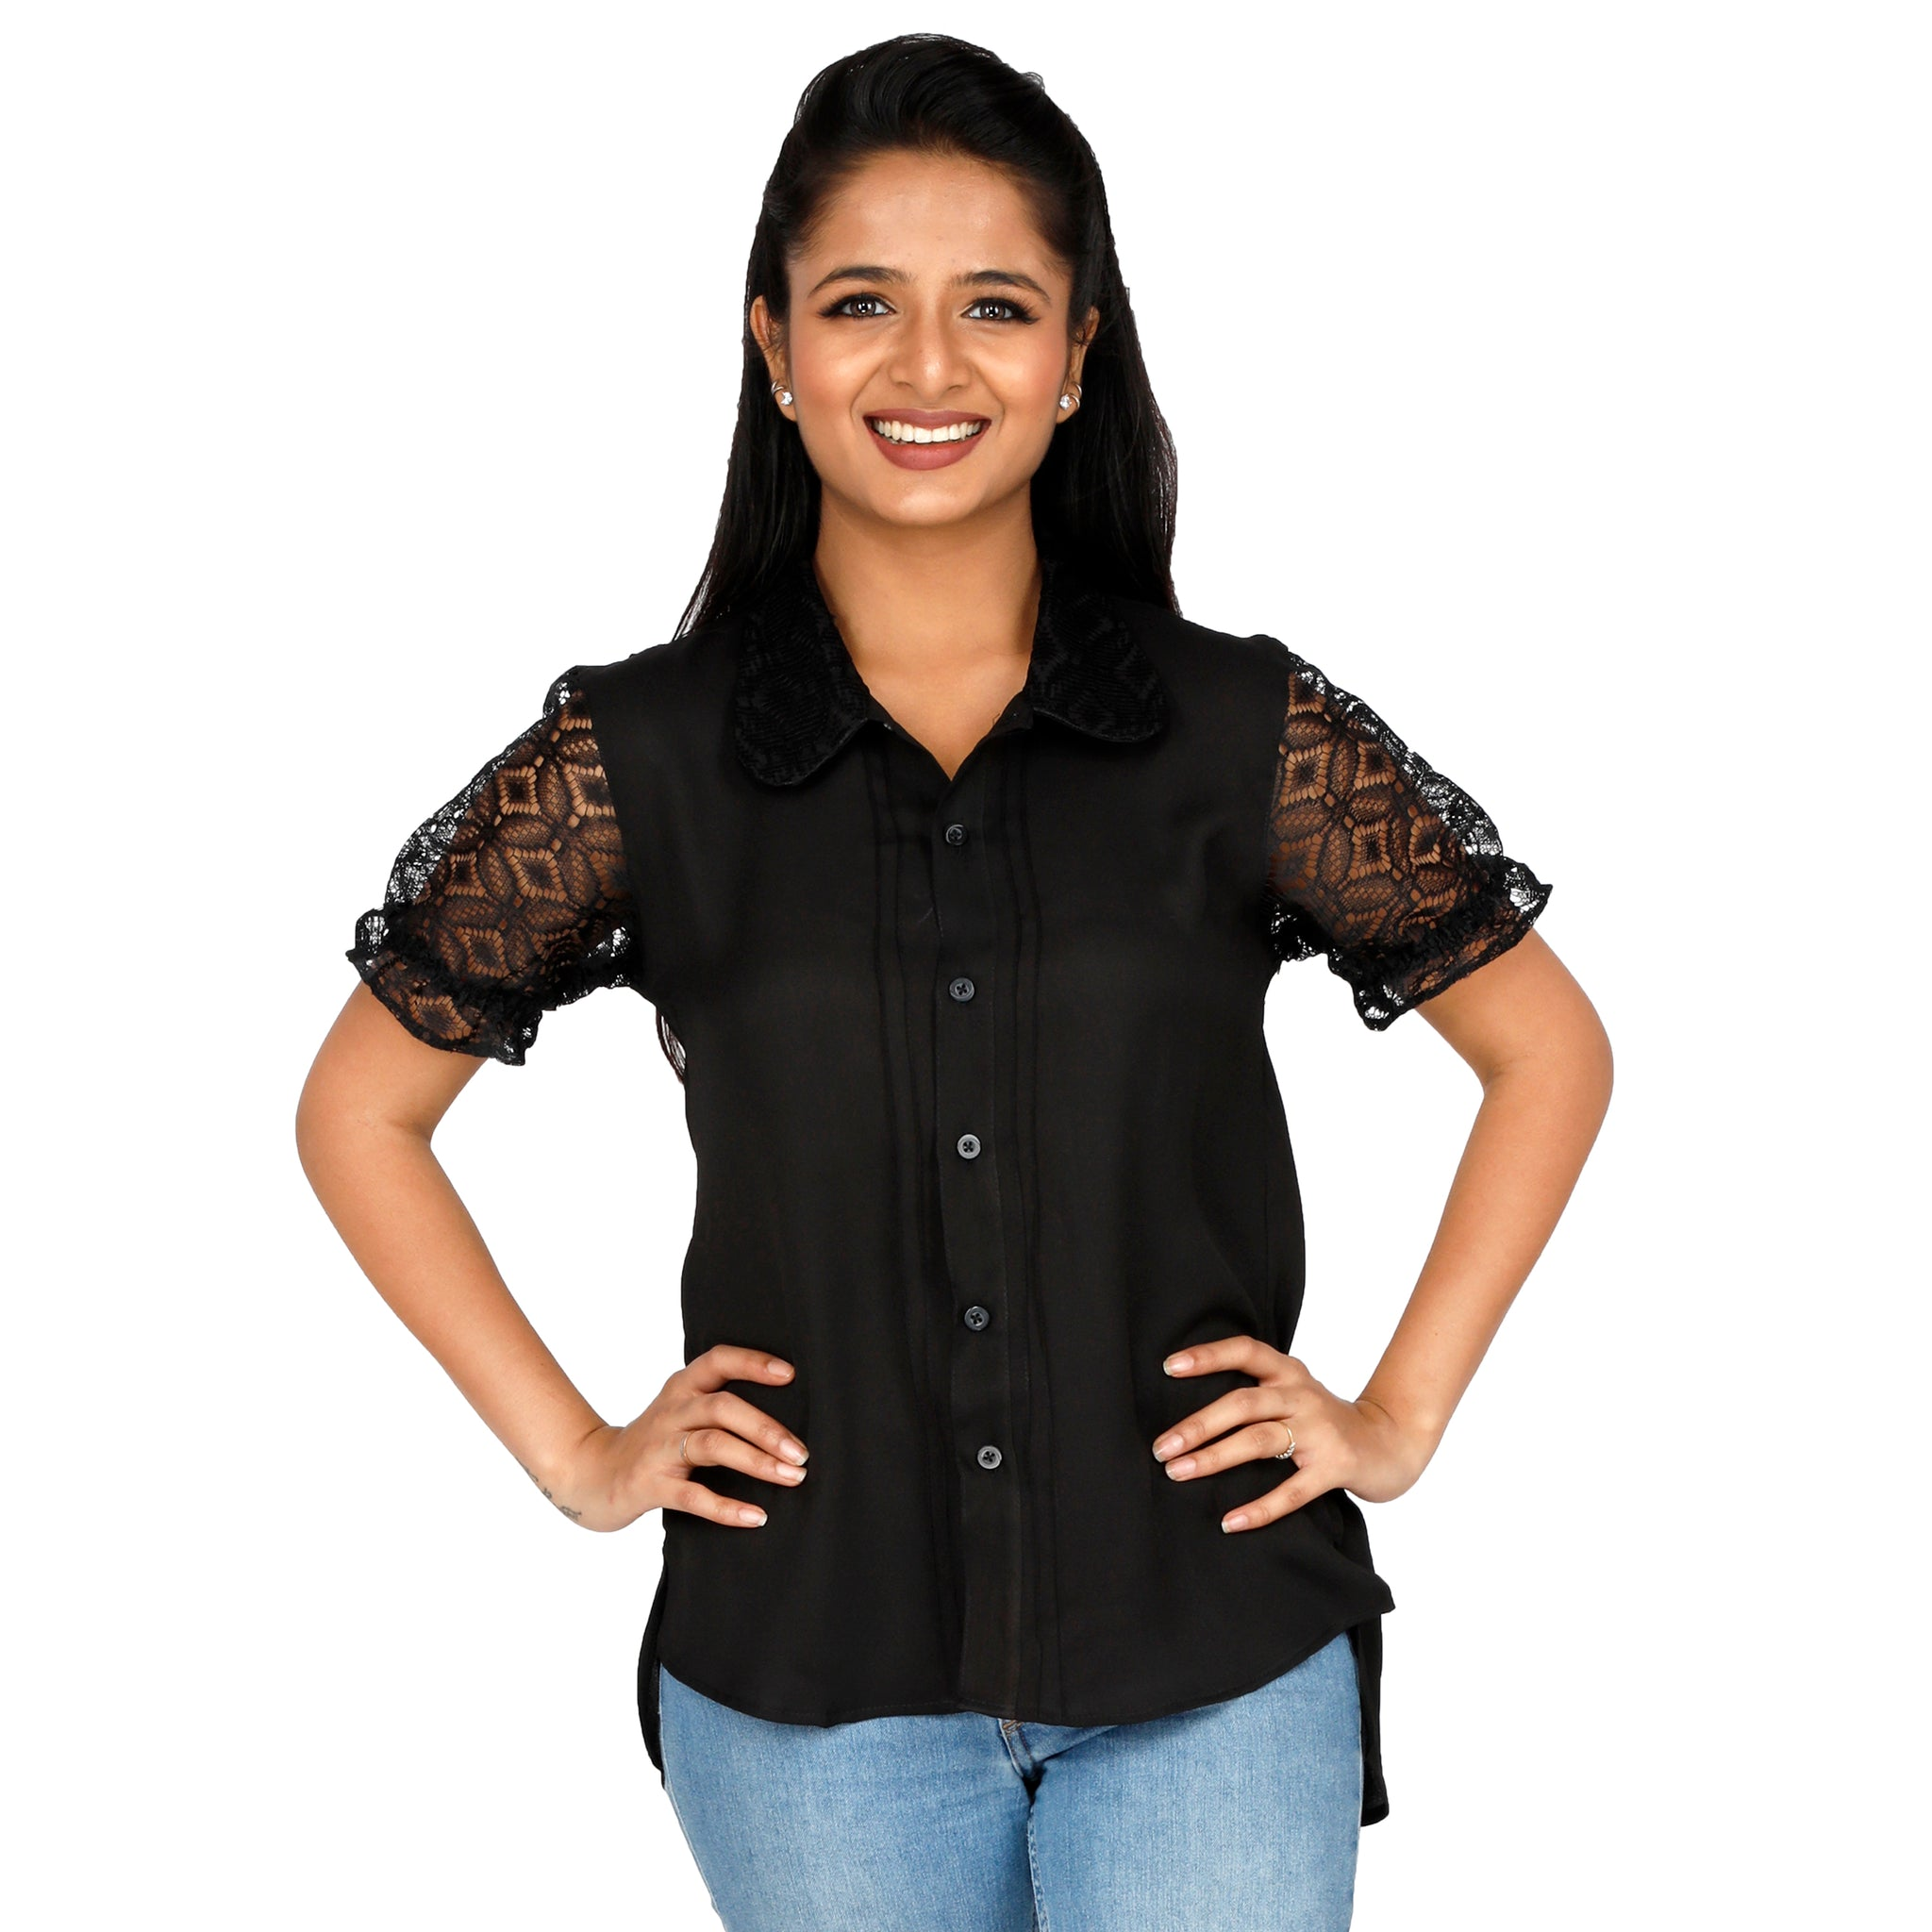 women's-dressy-black-top-with-sheer-sleeves-online